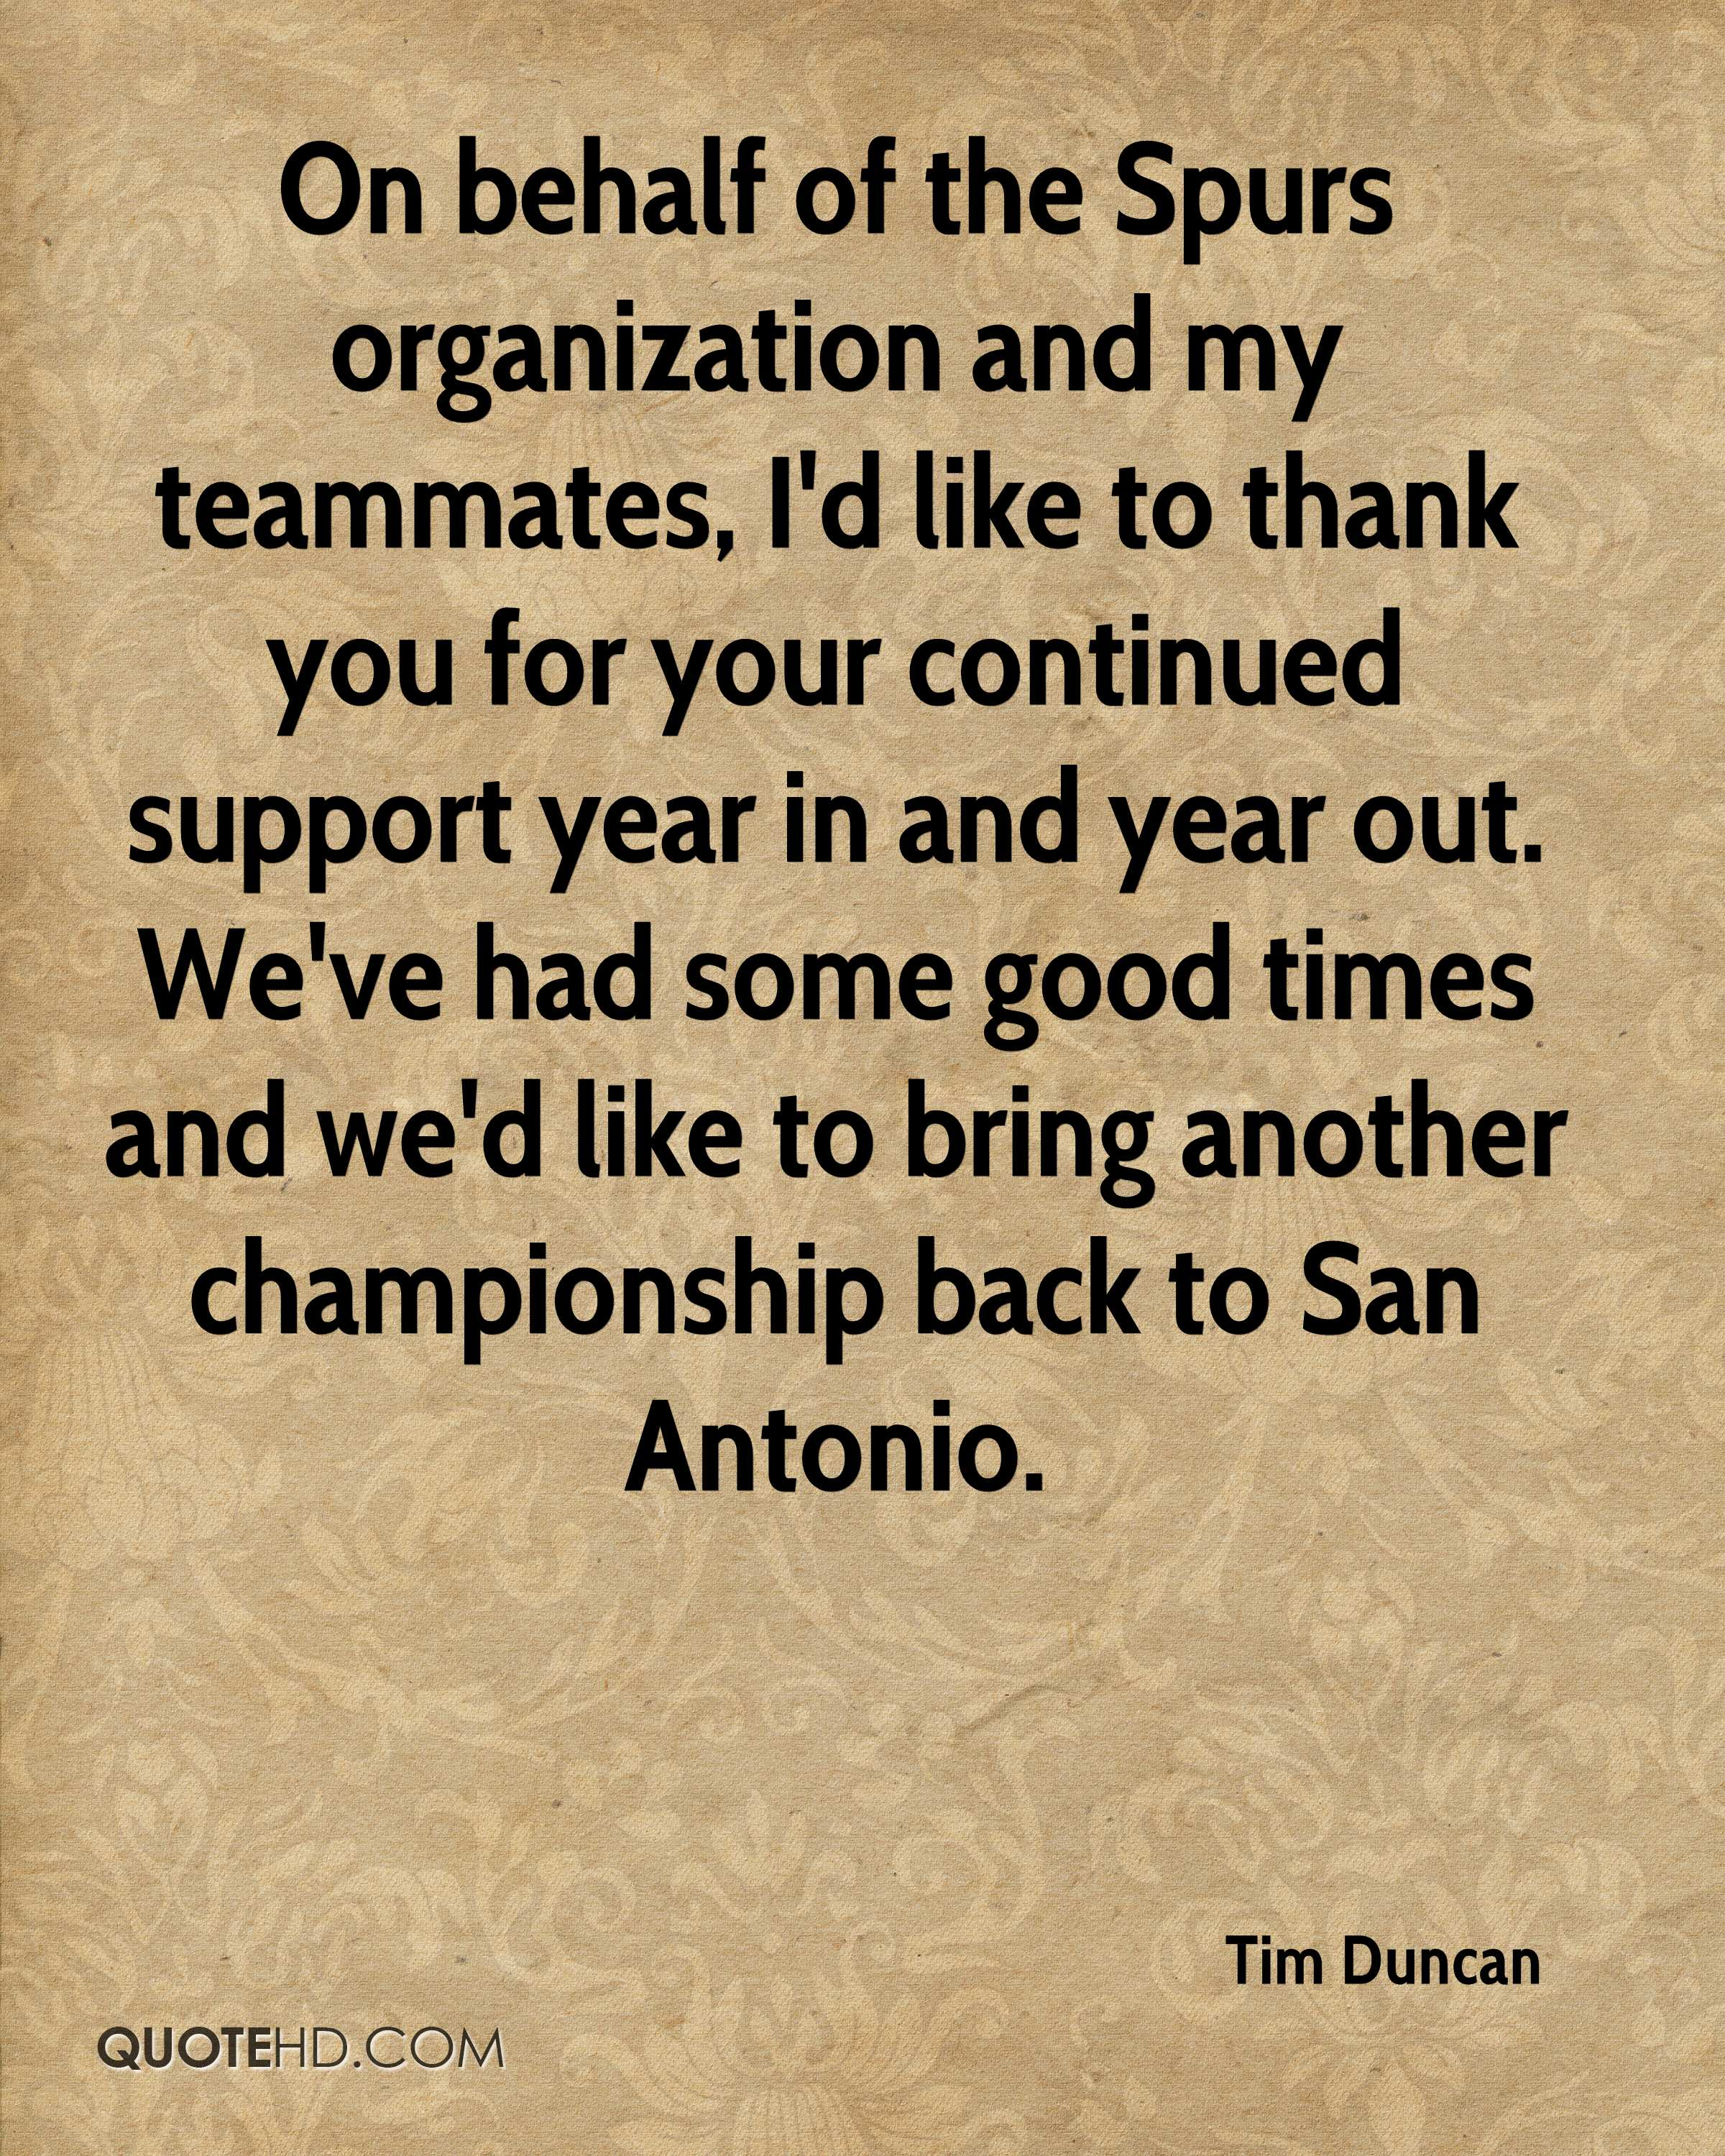 Quotes About Thank You For Support: Tim Duncan Quotes